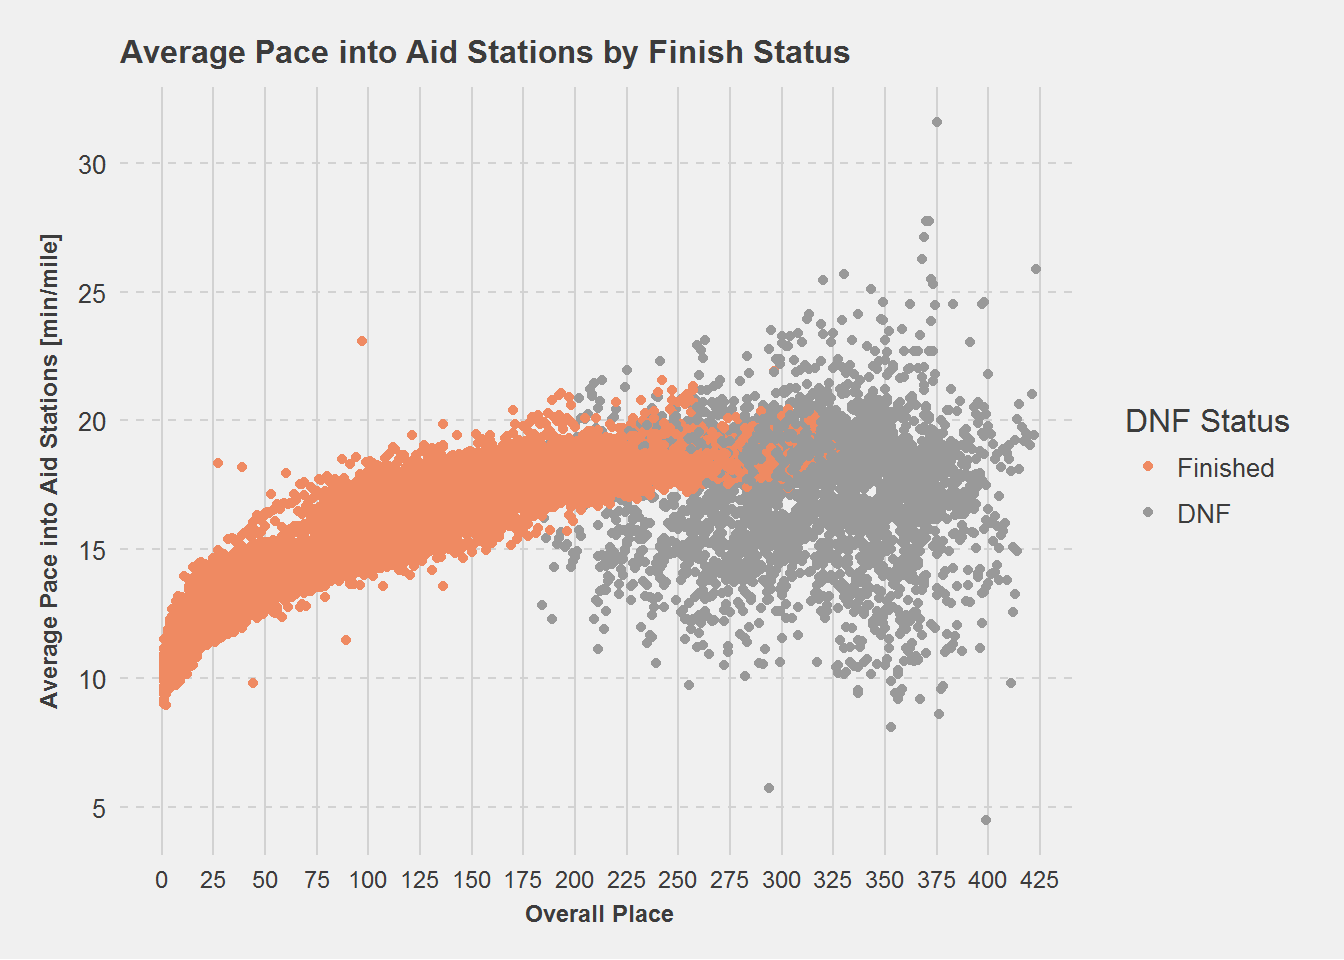 Average Pace into Aid Stations